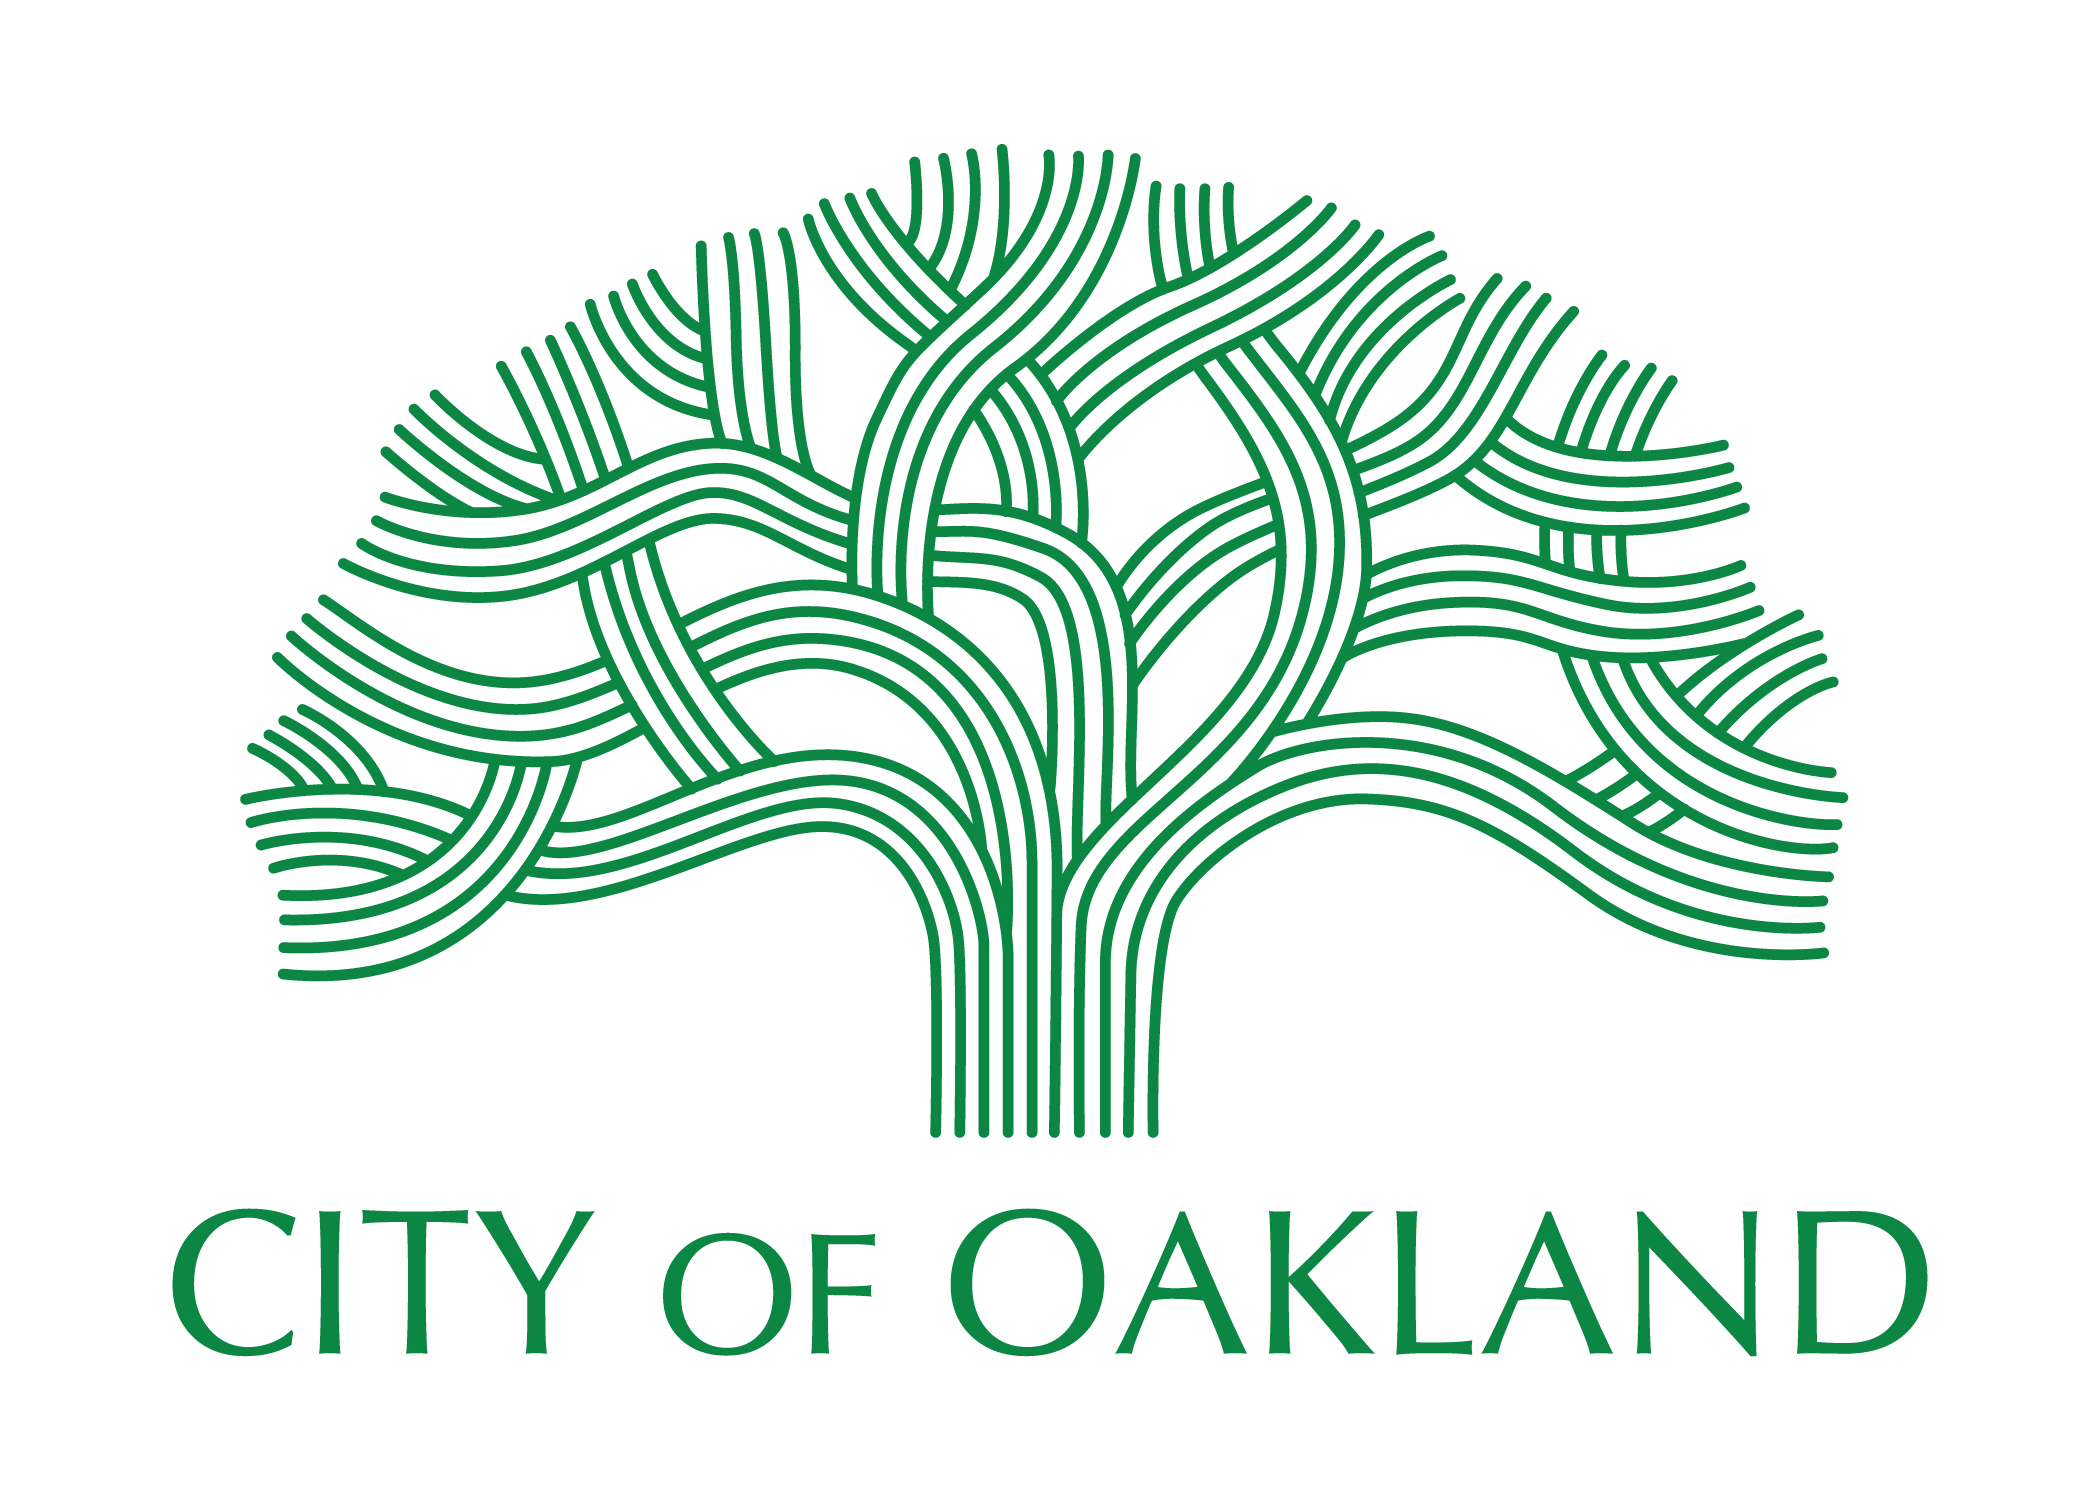 Statewide Residential Eviction Moratorium Ends But Not Oakland's Eviction Moratorium - Blog